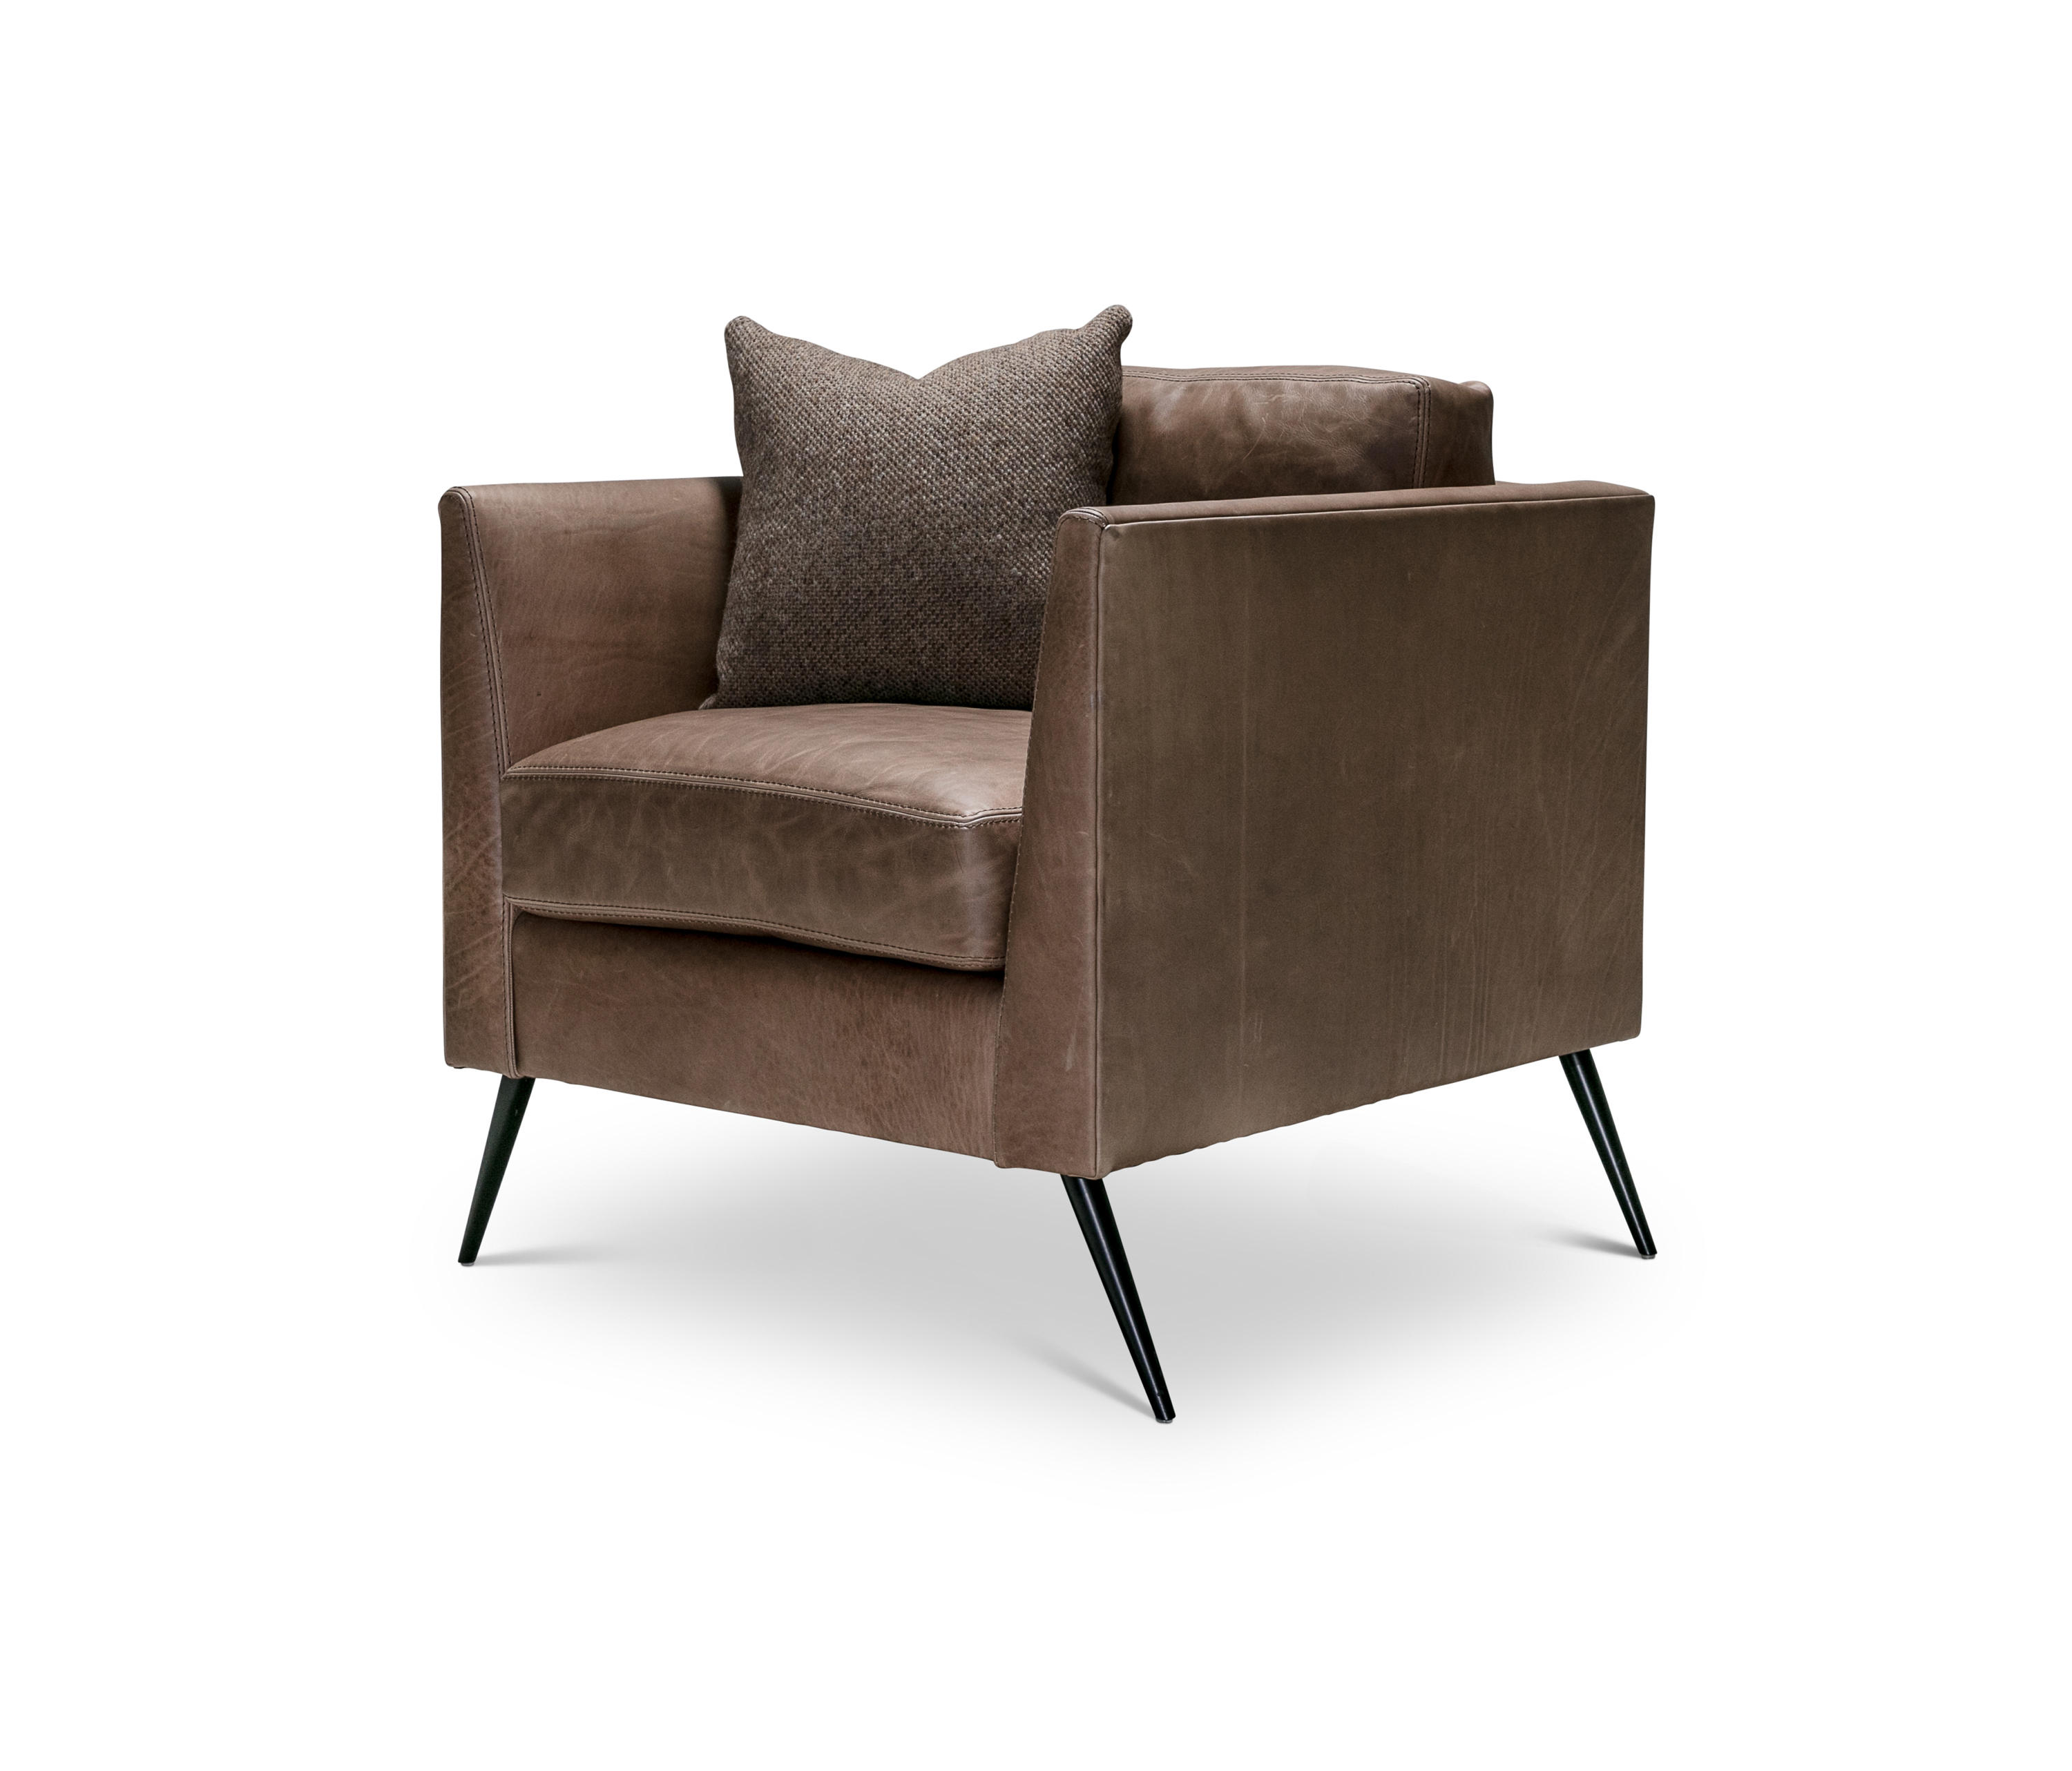 TERRENCE CLUB CHAIR Lounge chairs from Verellen